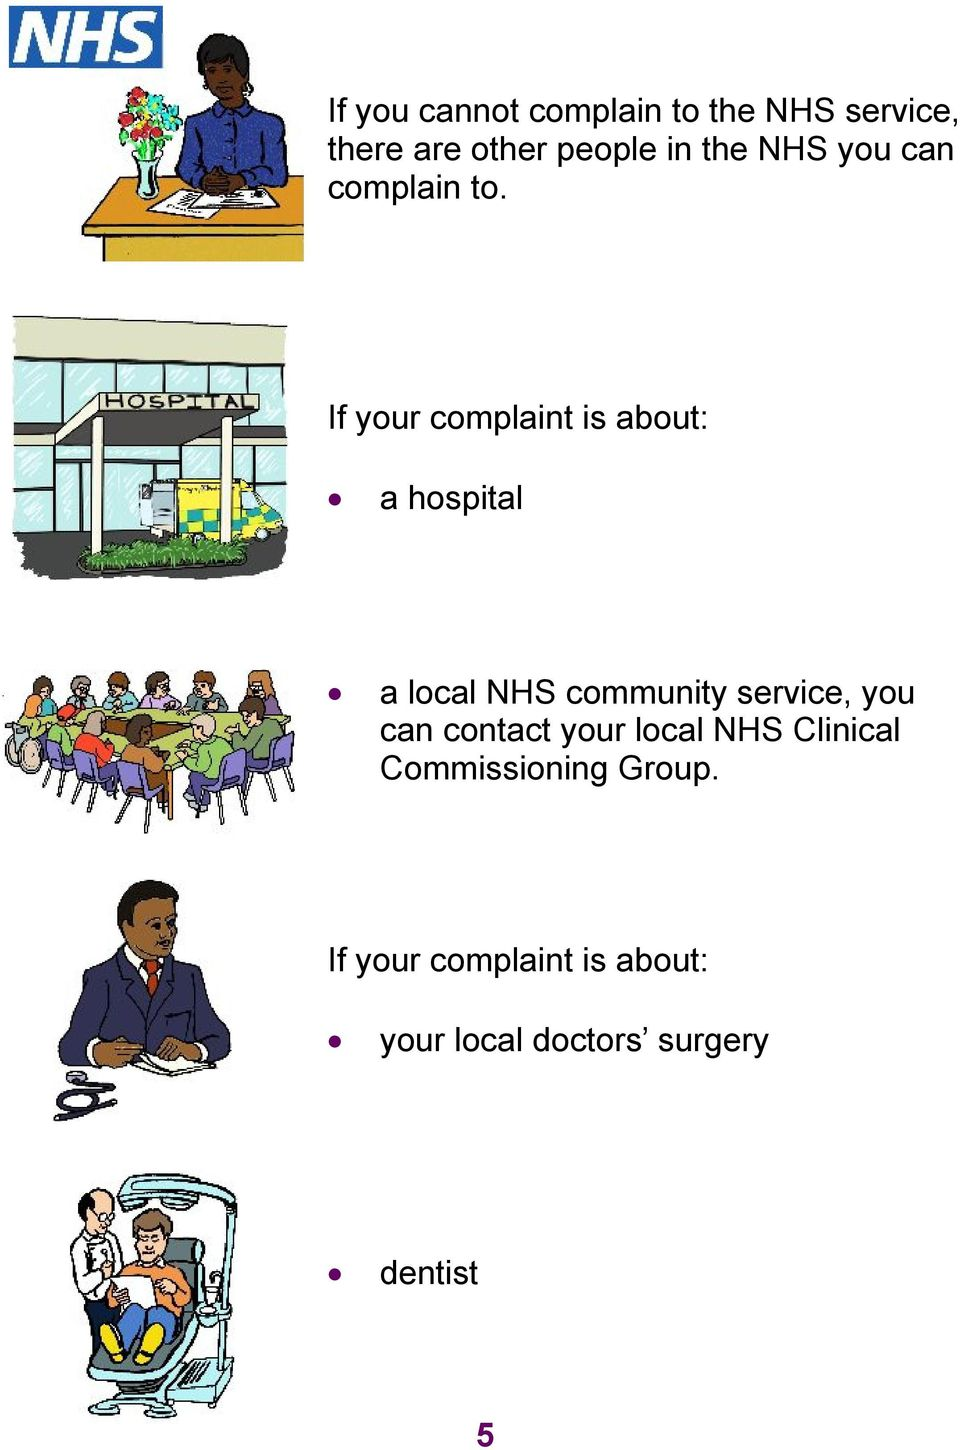 If your complaint is about: a hospital a local NHS community service, you